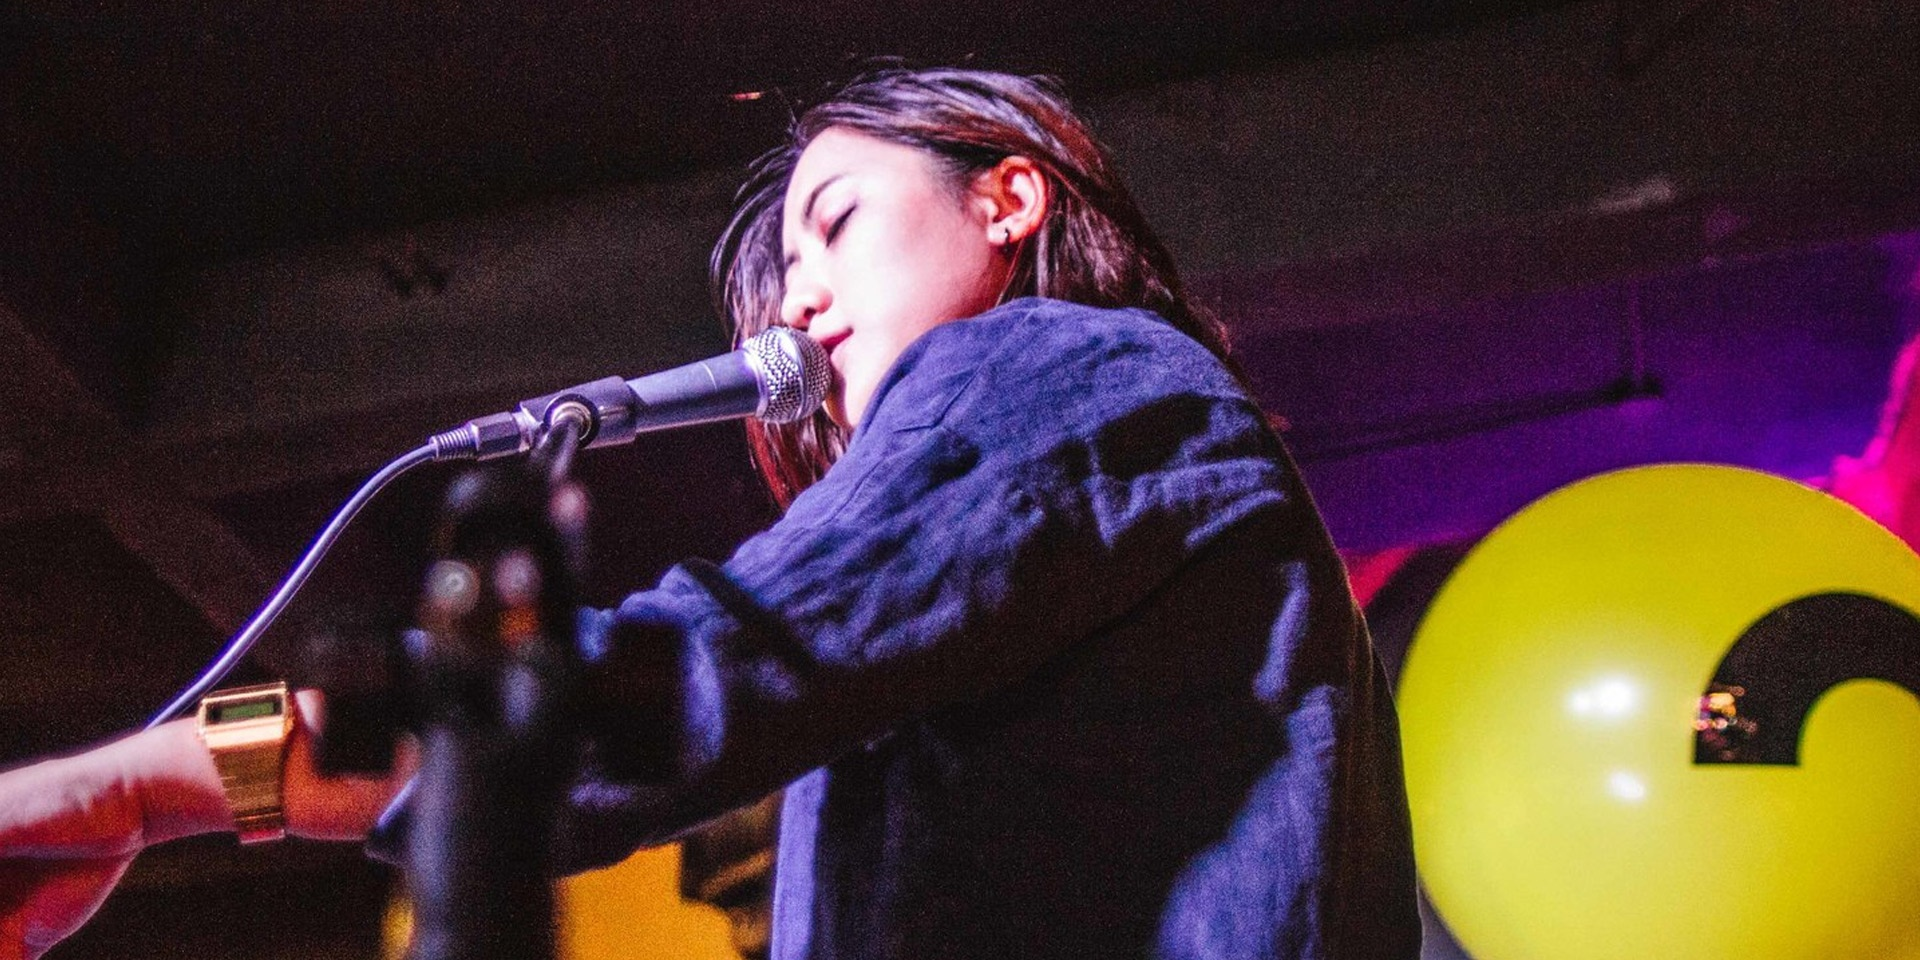 BP Valenzuela to open for No Rome in New York